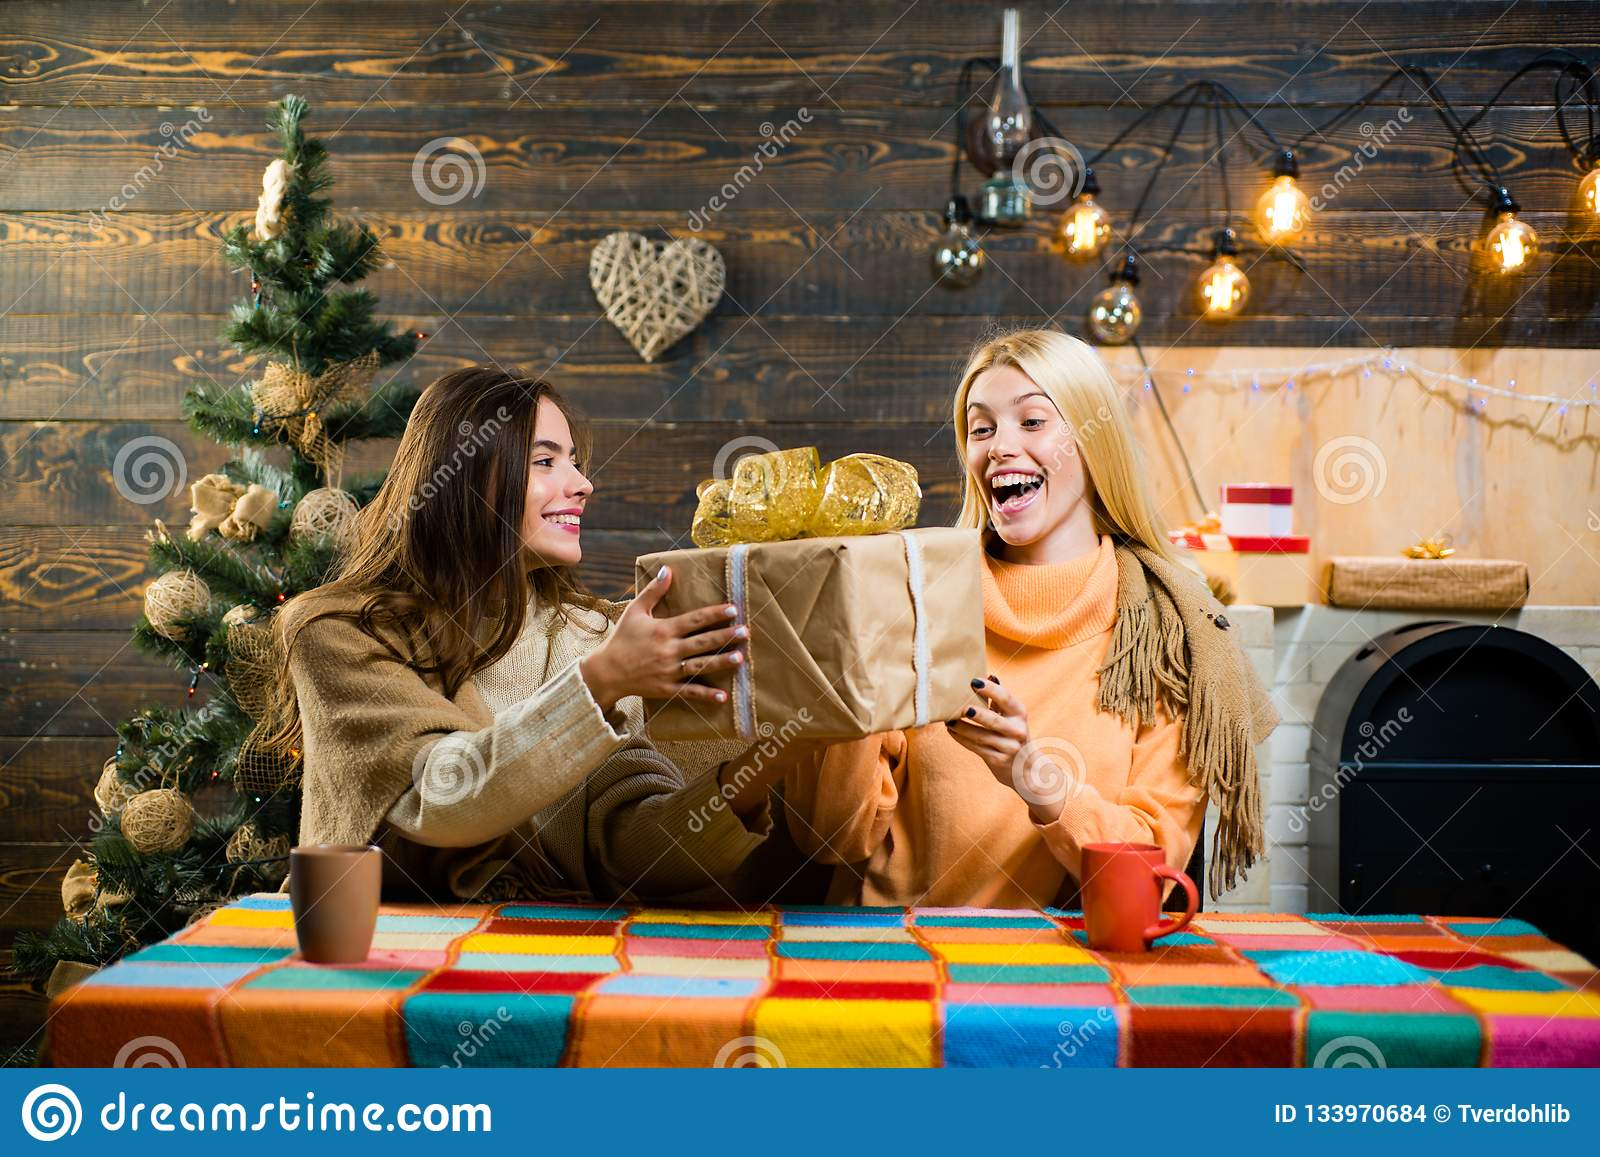 Christmas Present Ideas For Best Friends Girl.Wish You Merry Christmas Present Gift On Winter Holidays